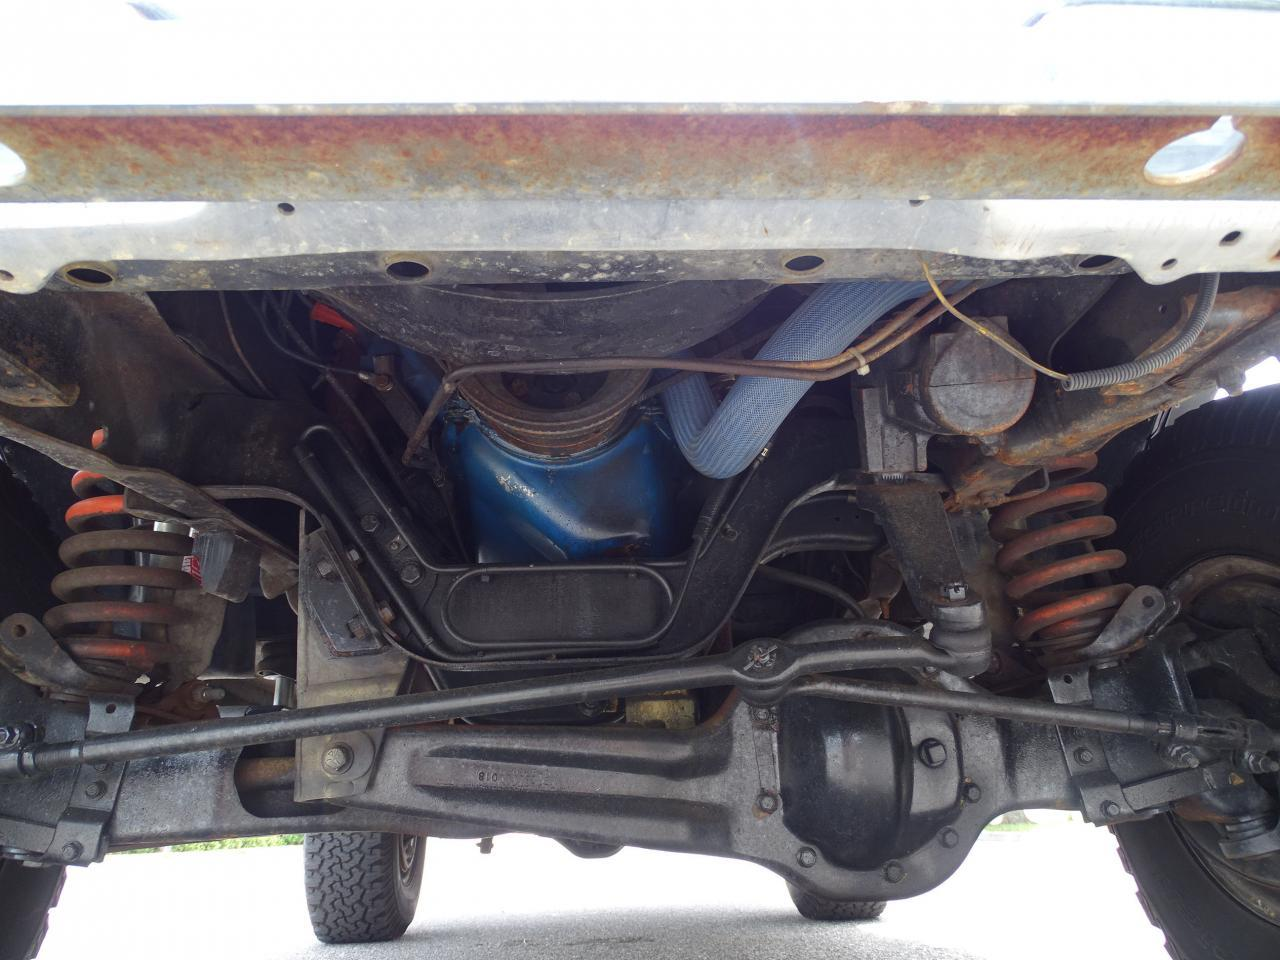 1980 Ford Bronco For Sale Cc 1092446 Fuel Line Large Picture Of Located In Florida Nexq